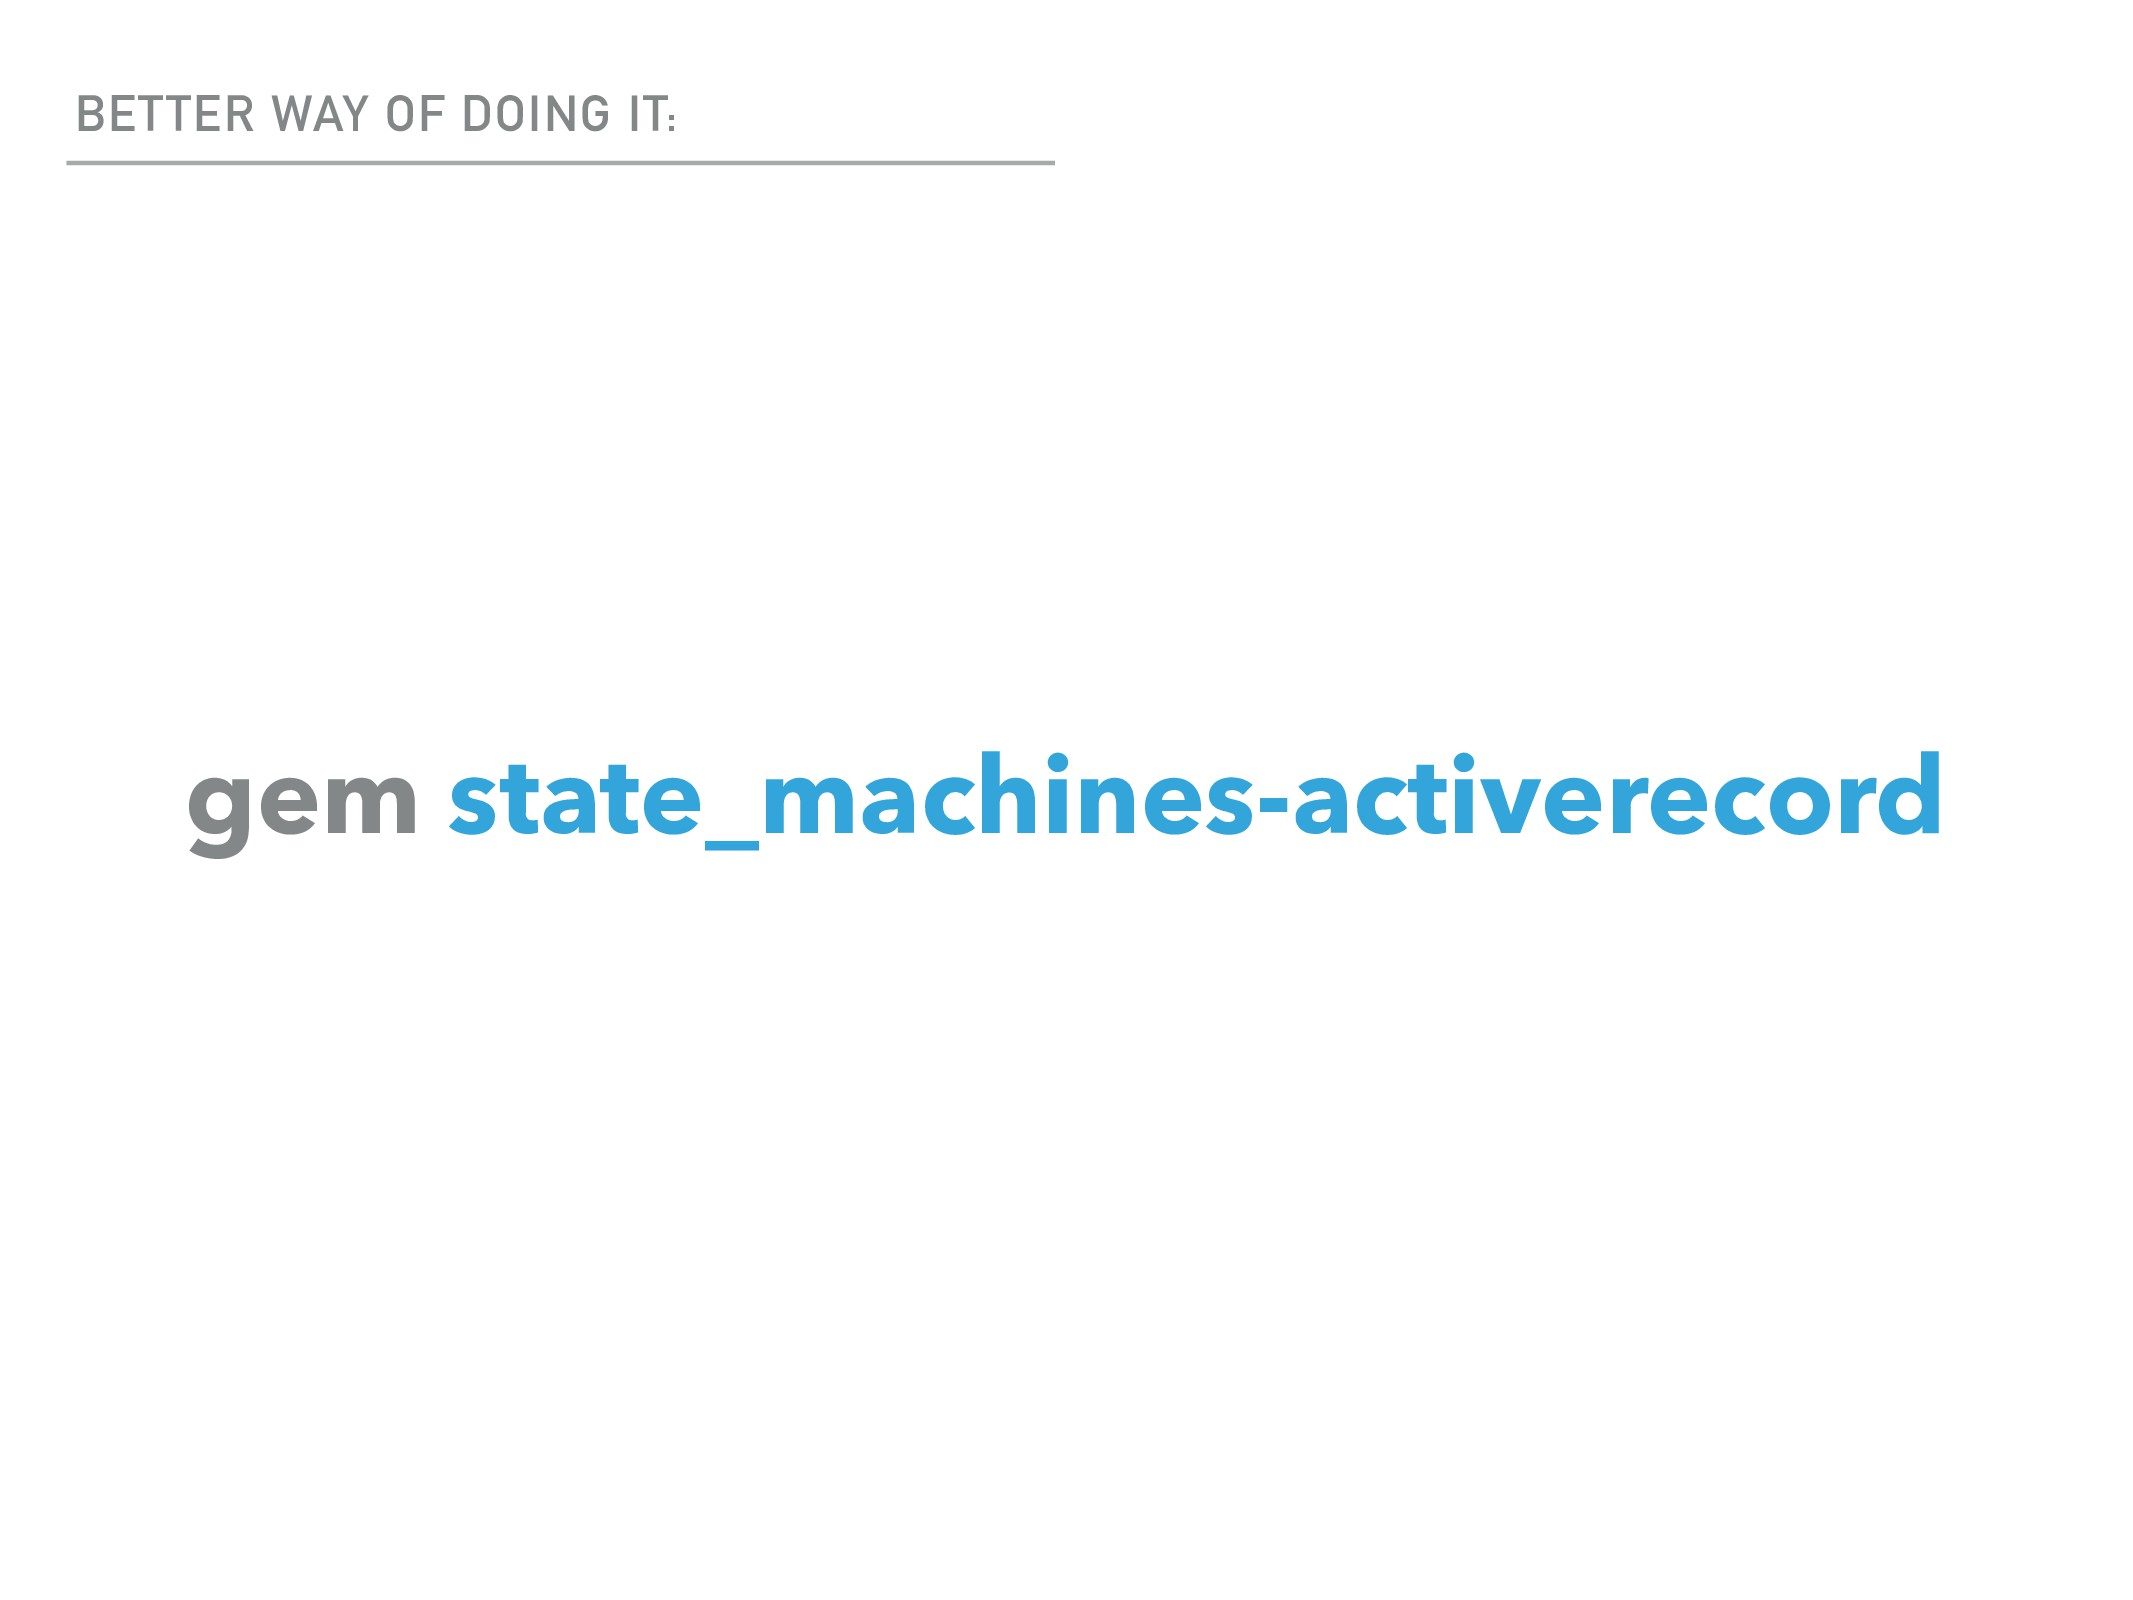 BETTER WAY OF DOING IT: gem state_machines-acti...